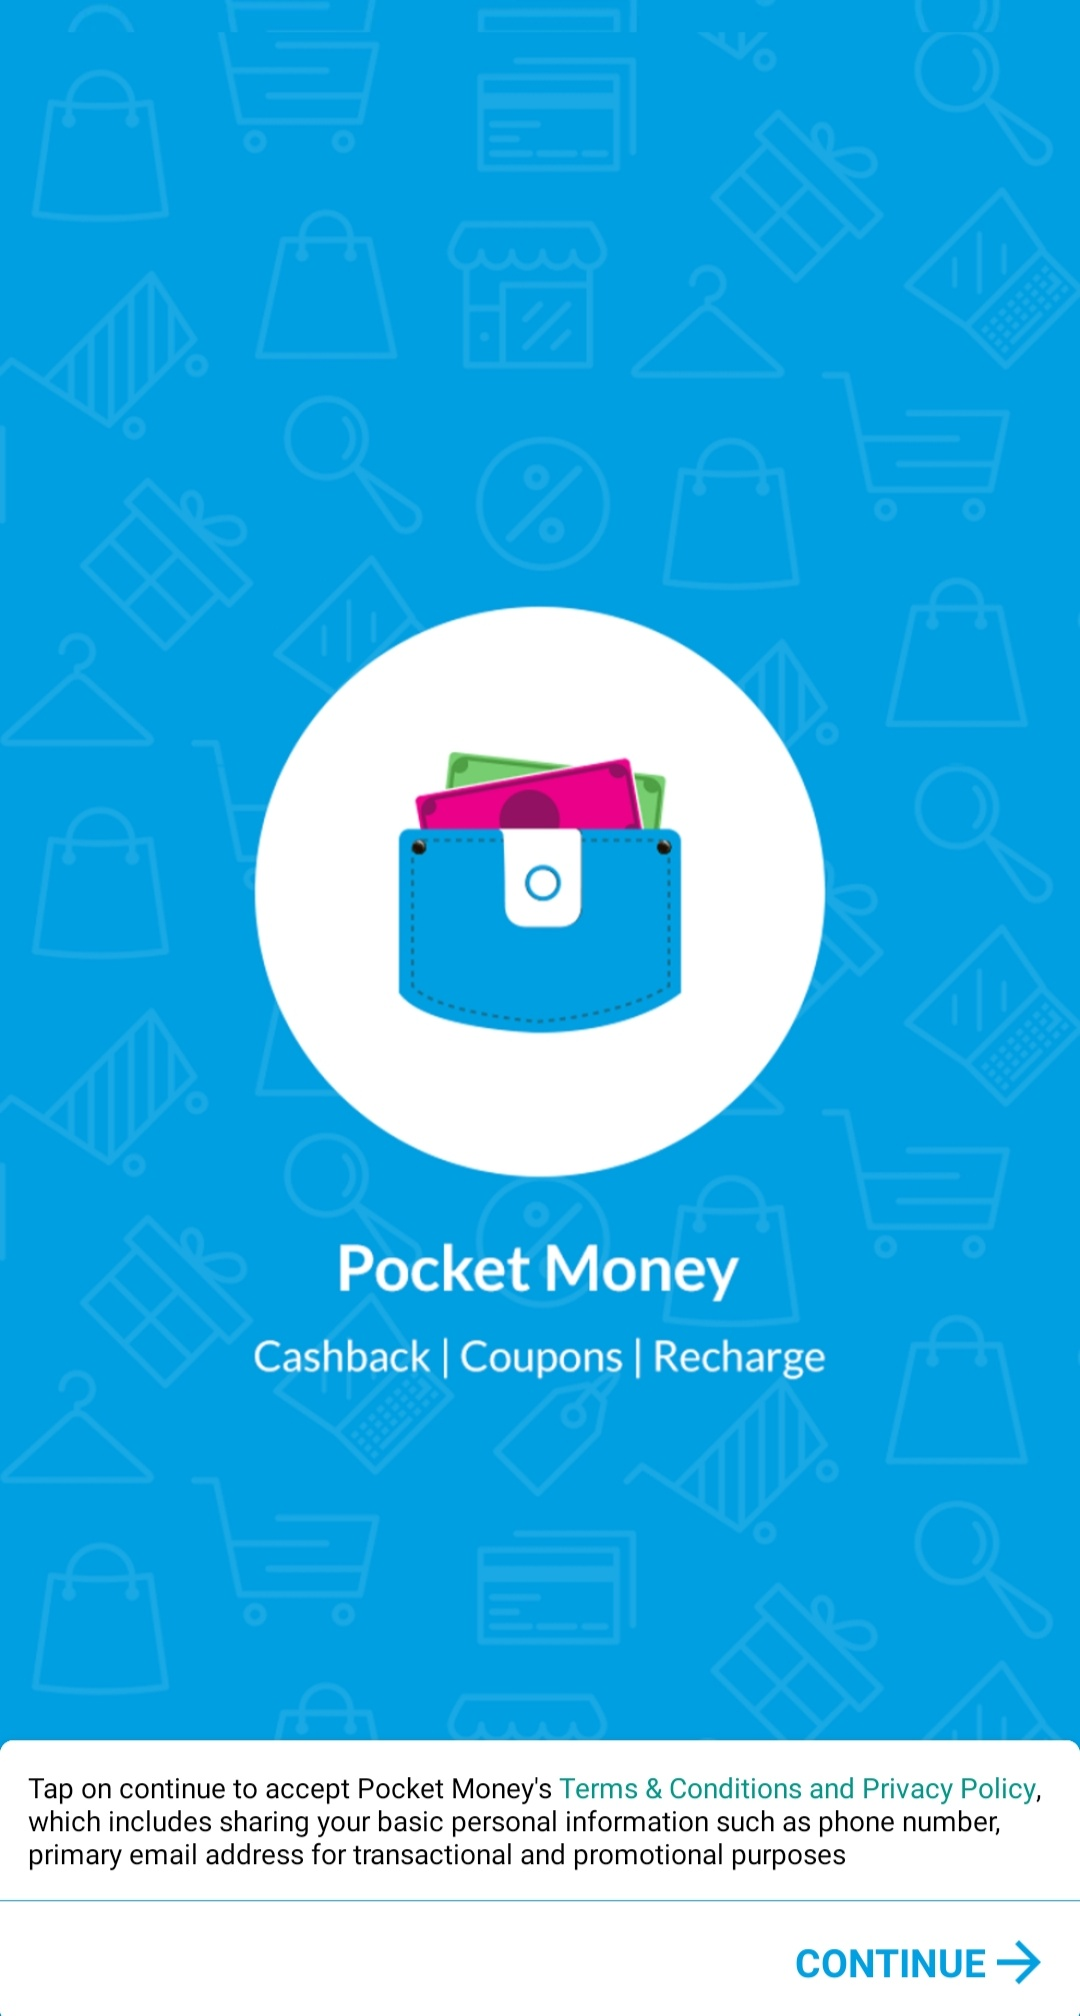 Pocket-Money-App